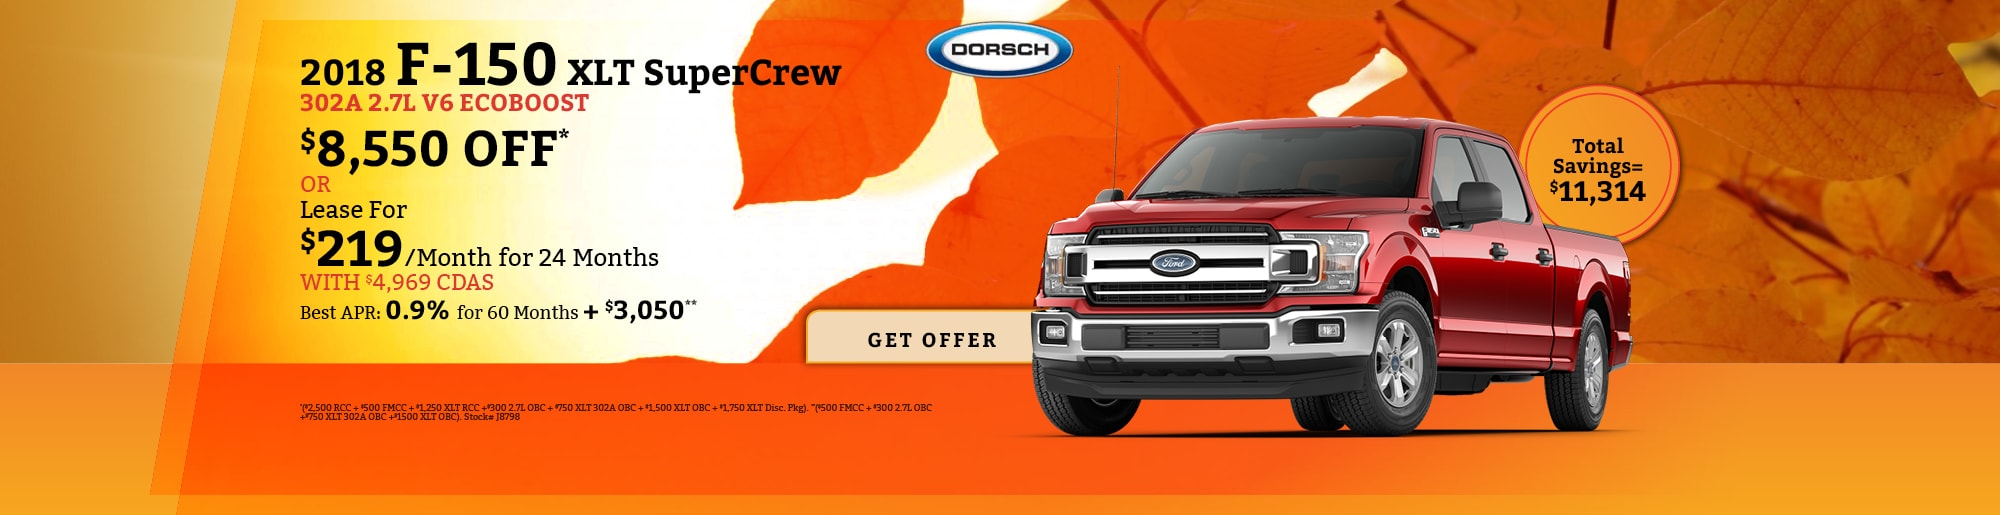 Dorsch Ford Green Bay >> New Ford and Used Cars dealership in Green Bay | Dorsch Ford Lincoln Serving Green Bay, De Pere ...